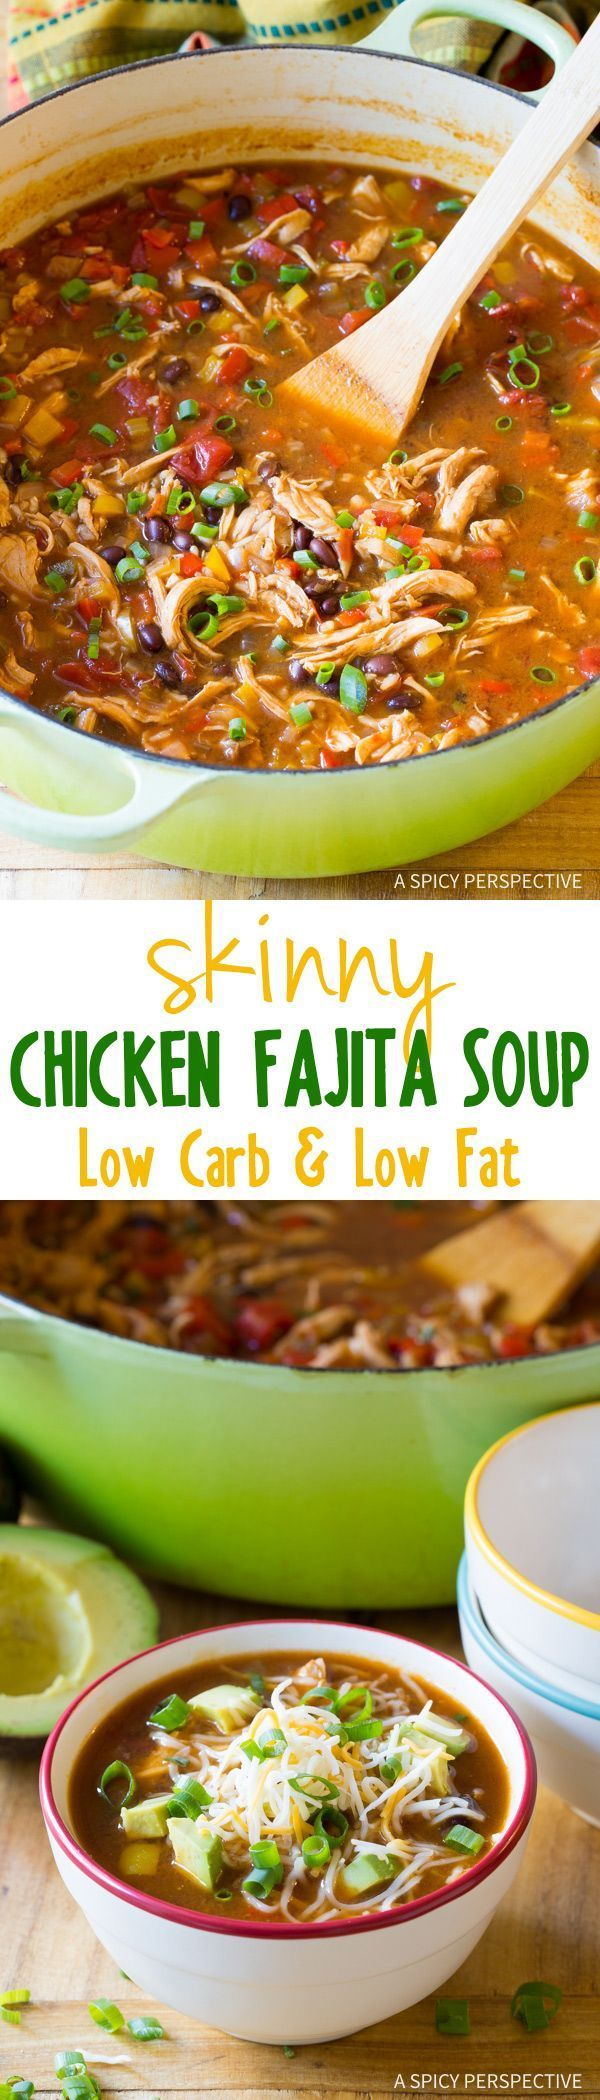 Amazing Skinny Chicken Fajita Soup Recipe - Low Fat, Gluten Free, & Low Carb Option!